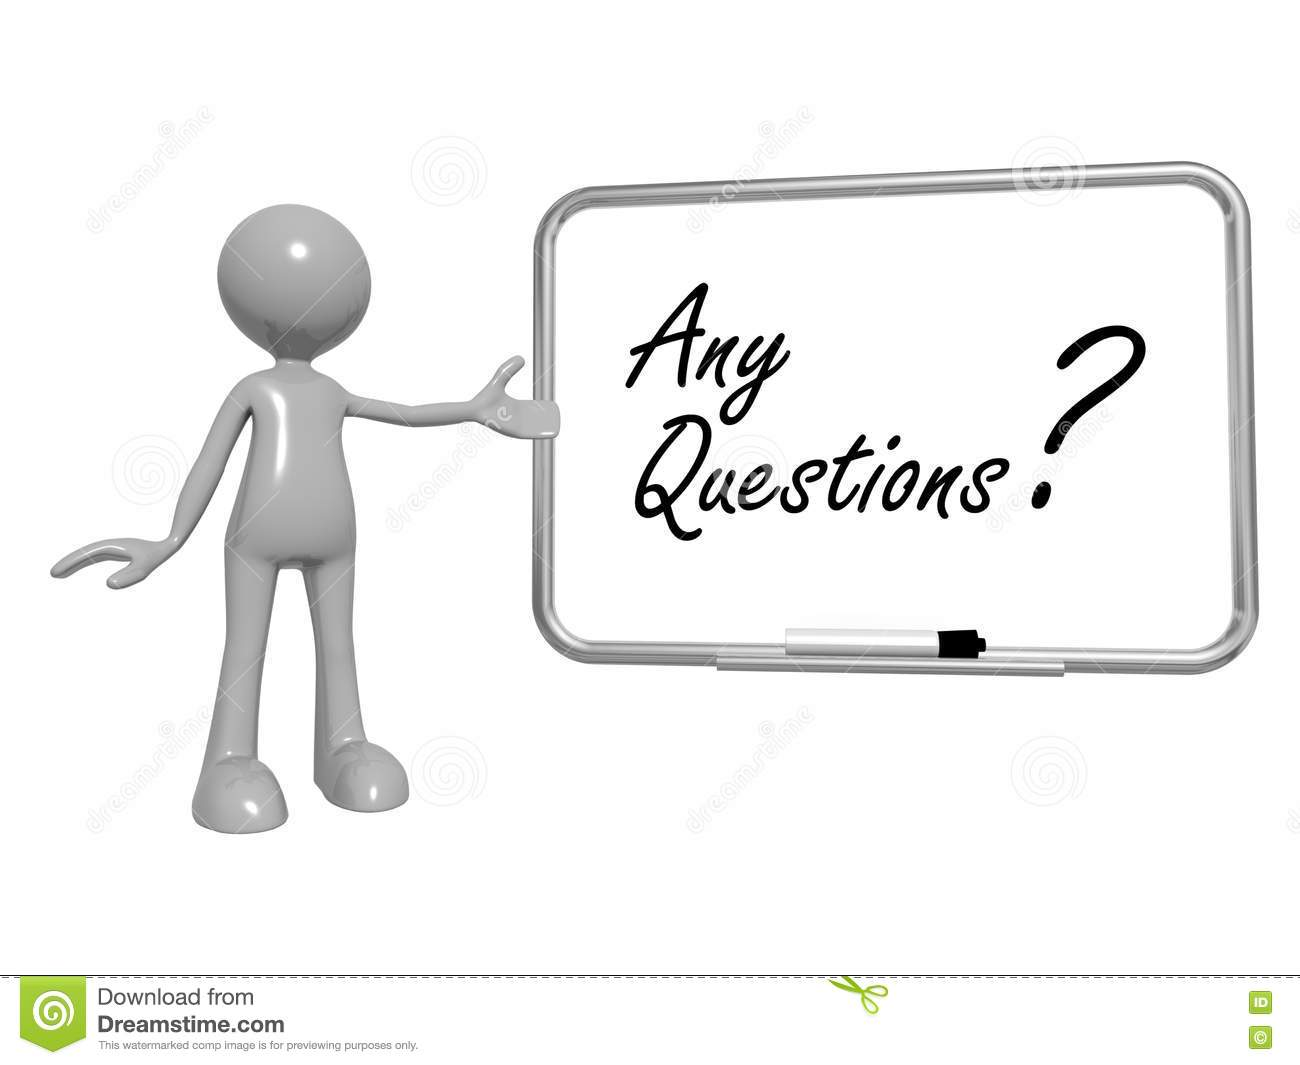 Any questions sign